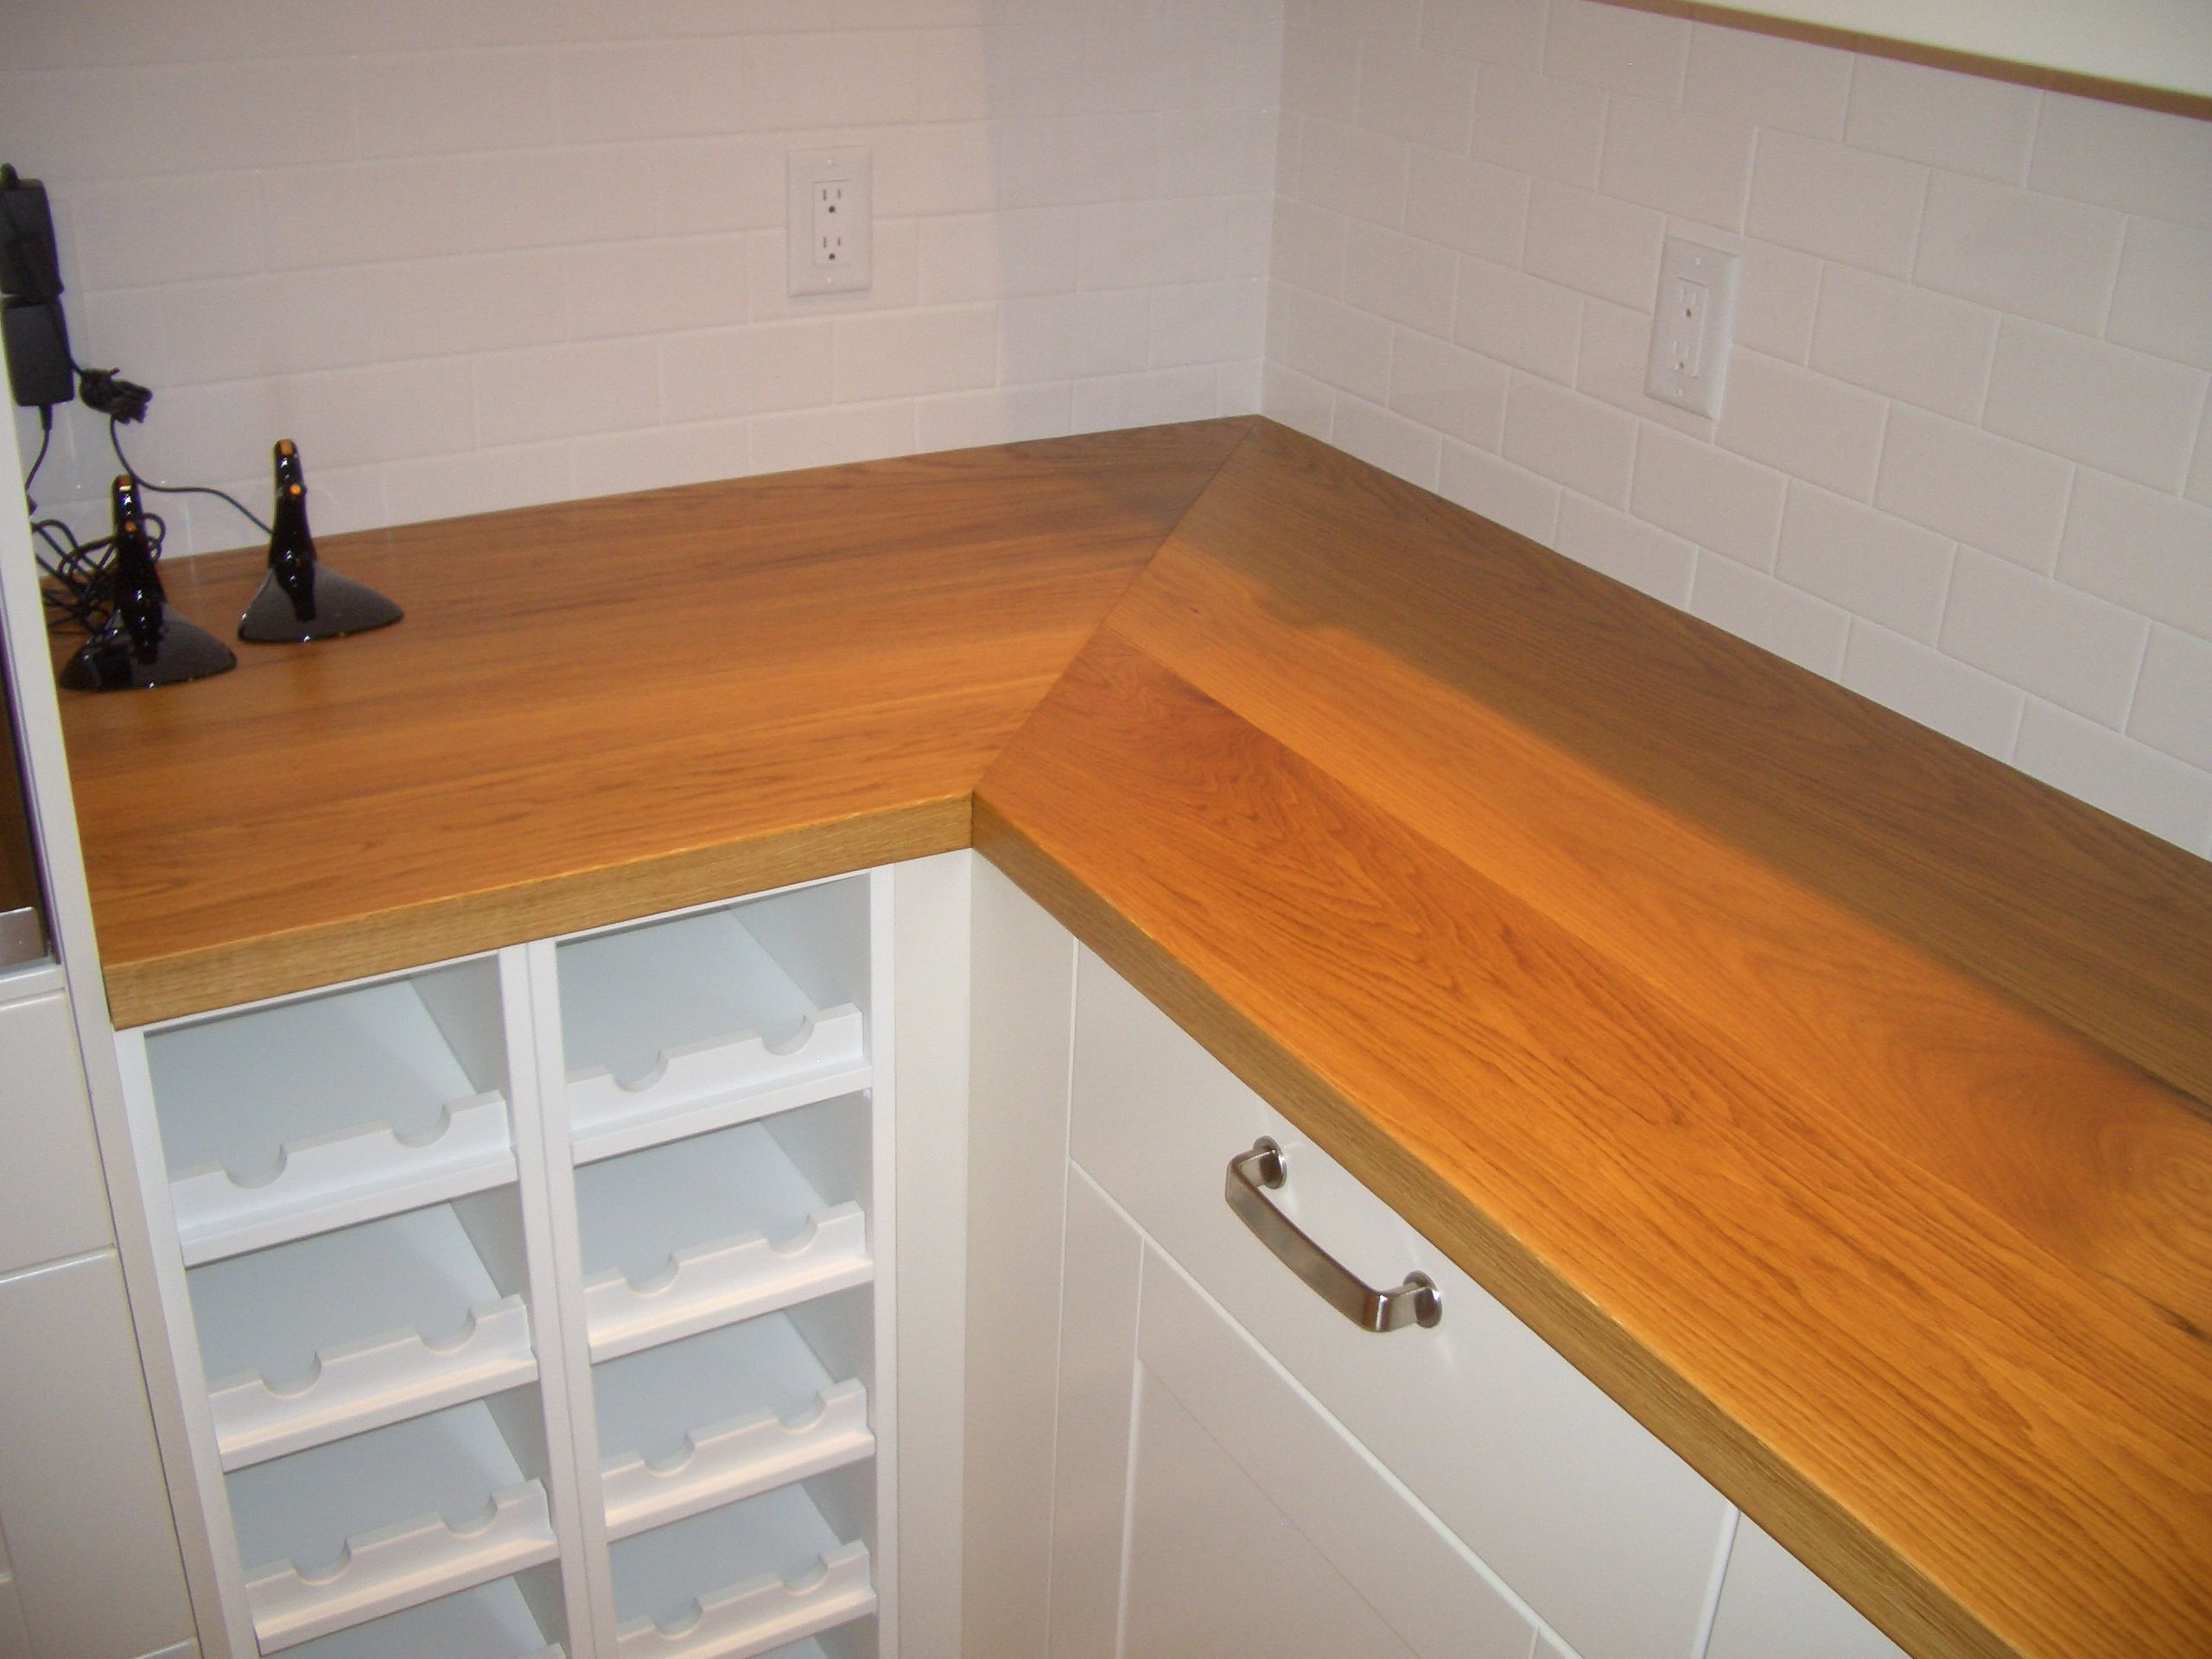 Custom Solid Wood Face Grain White Oak Counter Tops With A Mitre